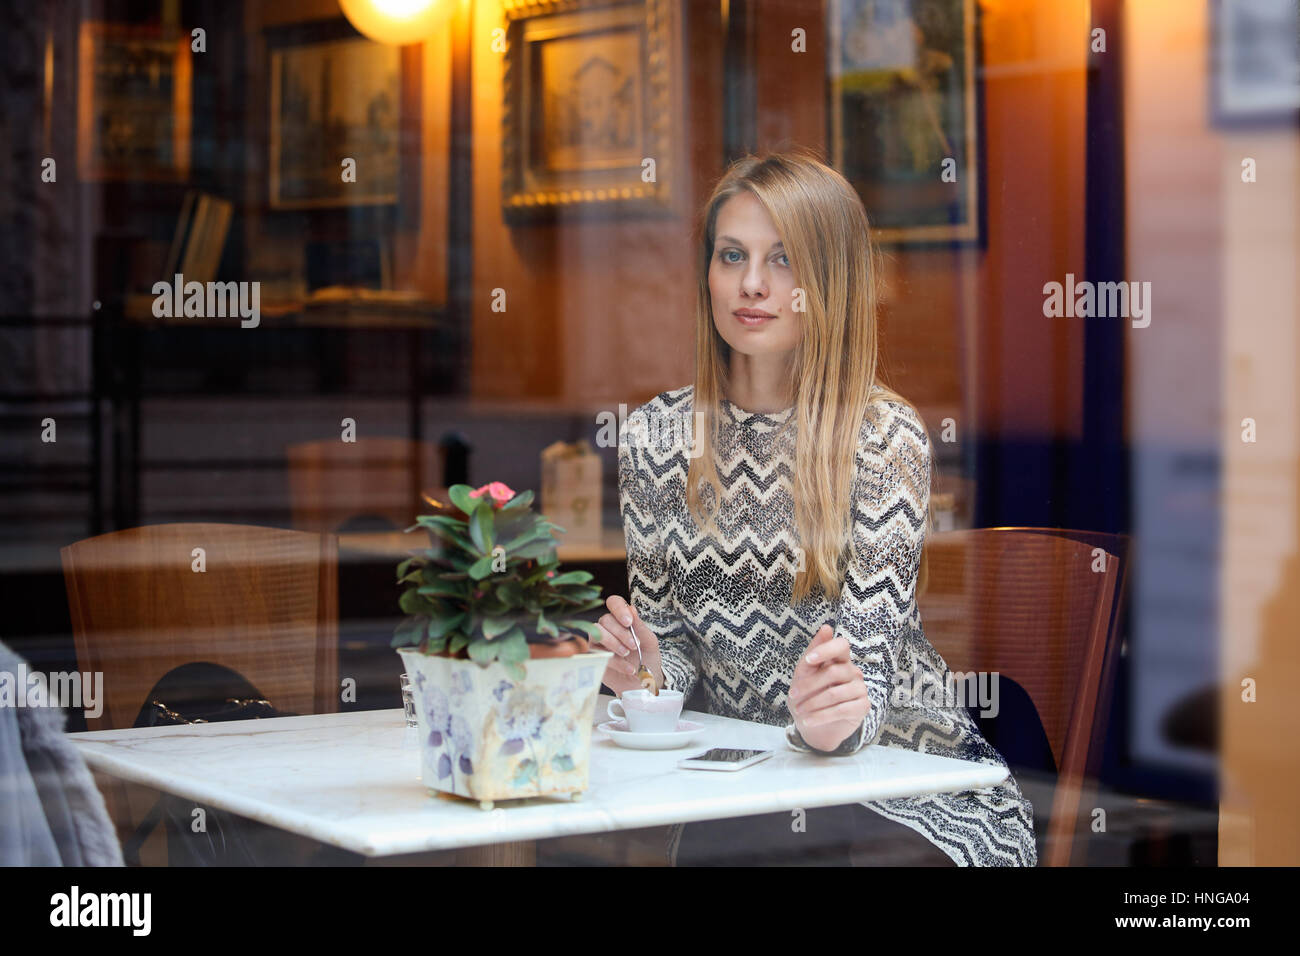 Beautiful elegant woman in an elegant city cafe. Urban lifestyle - Stock Image